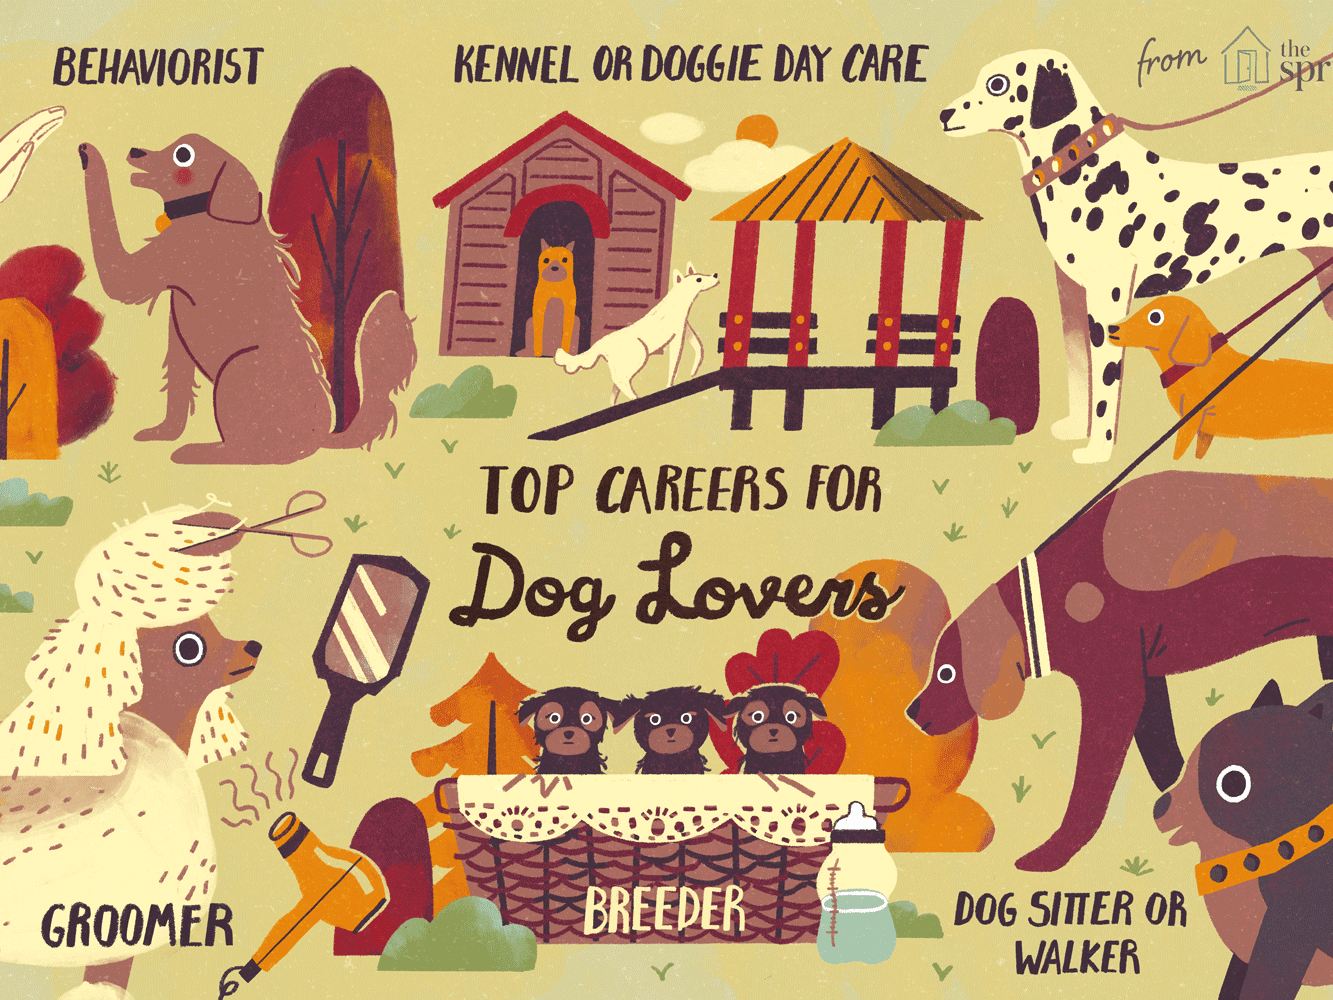 Top Careers for Dog Lovers